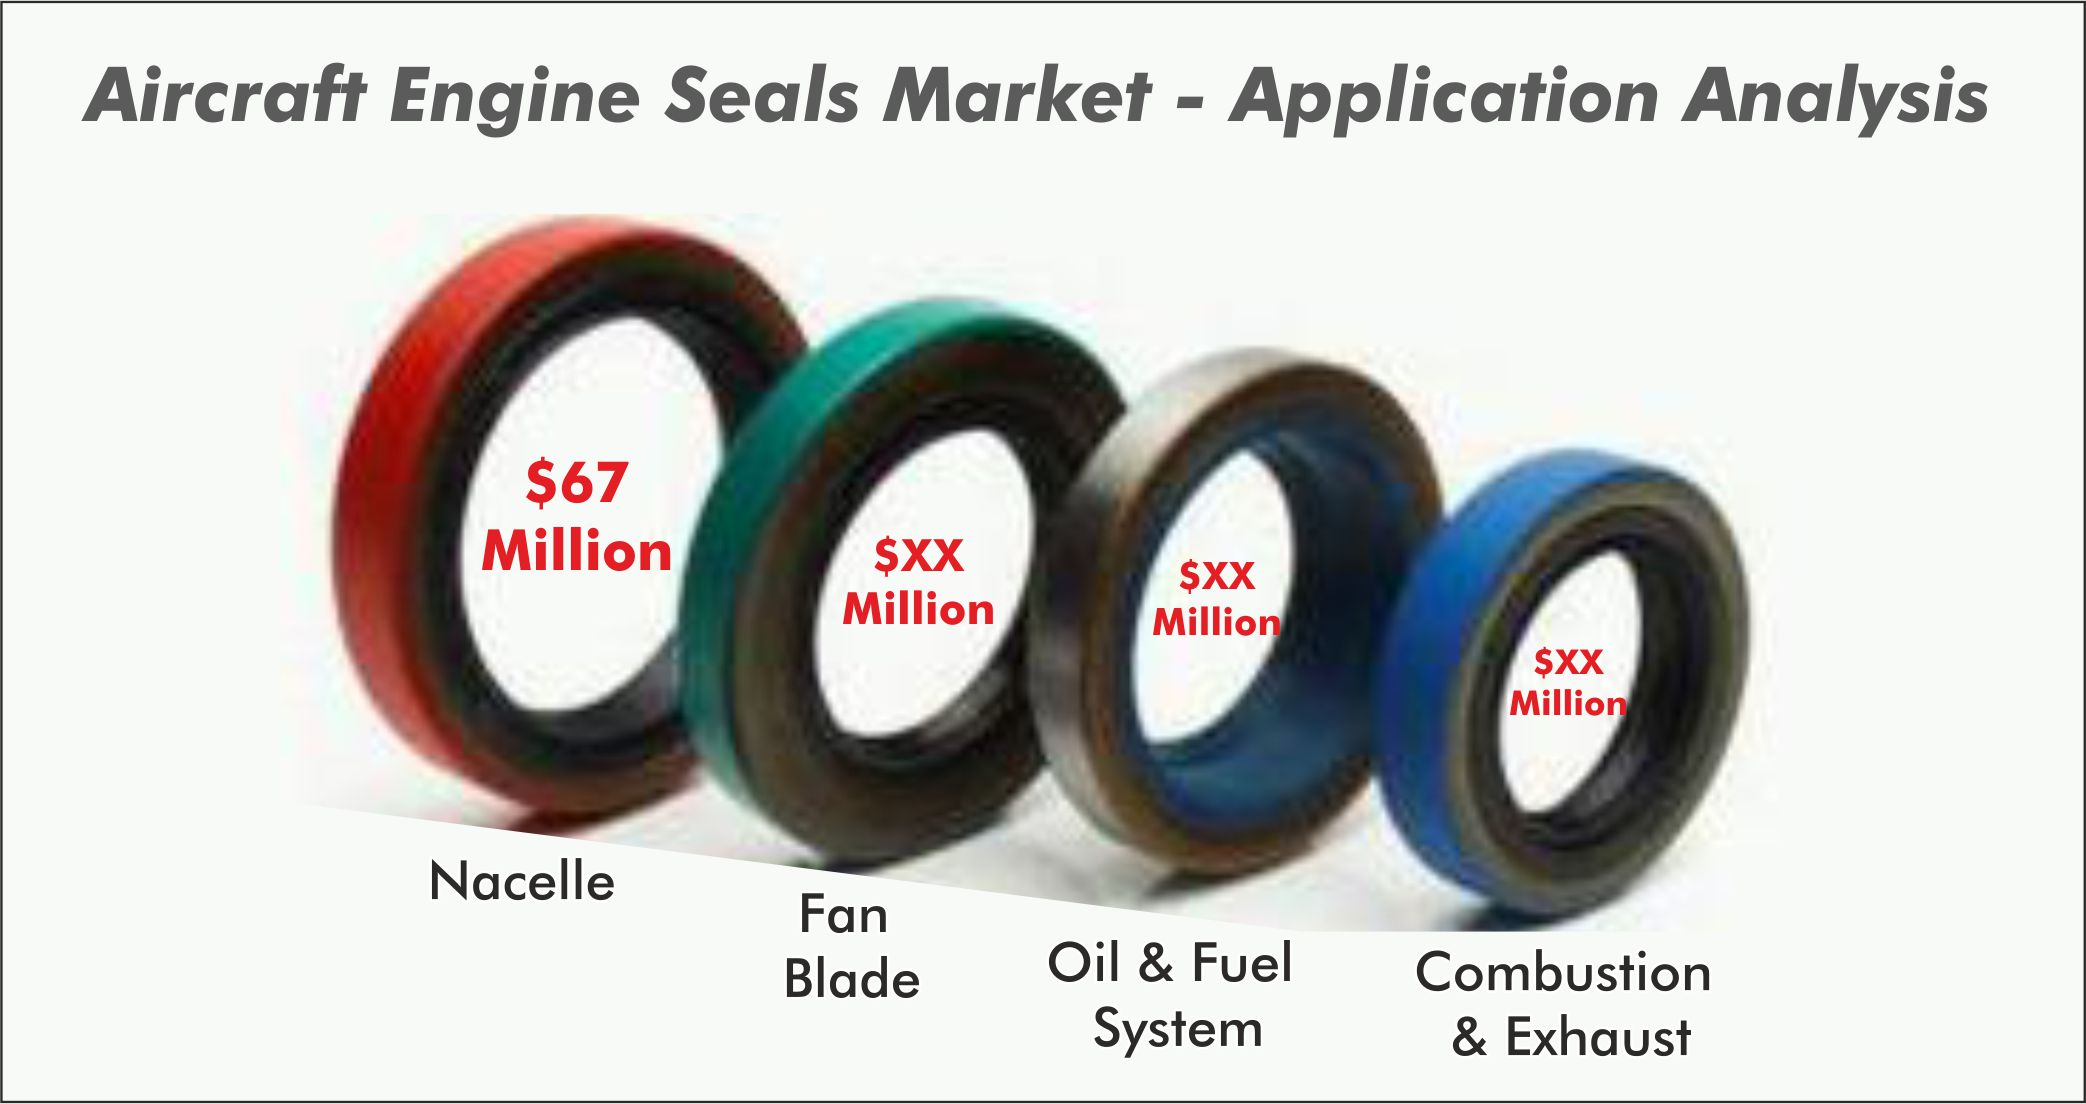 Aircraft Engine Seals Market - Application Analysis